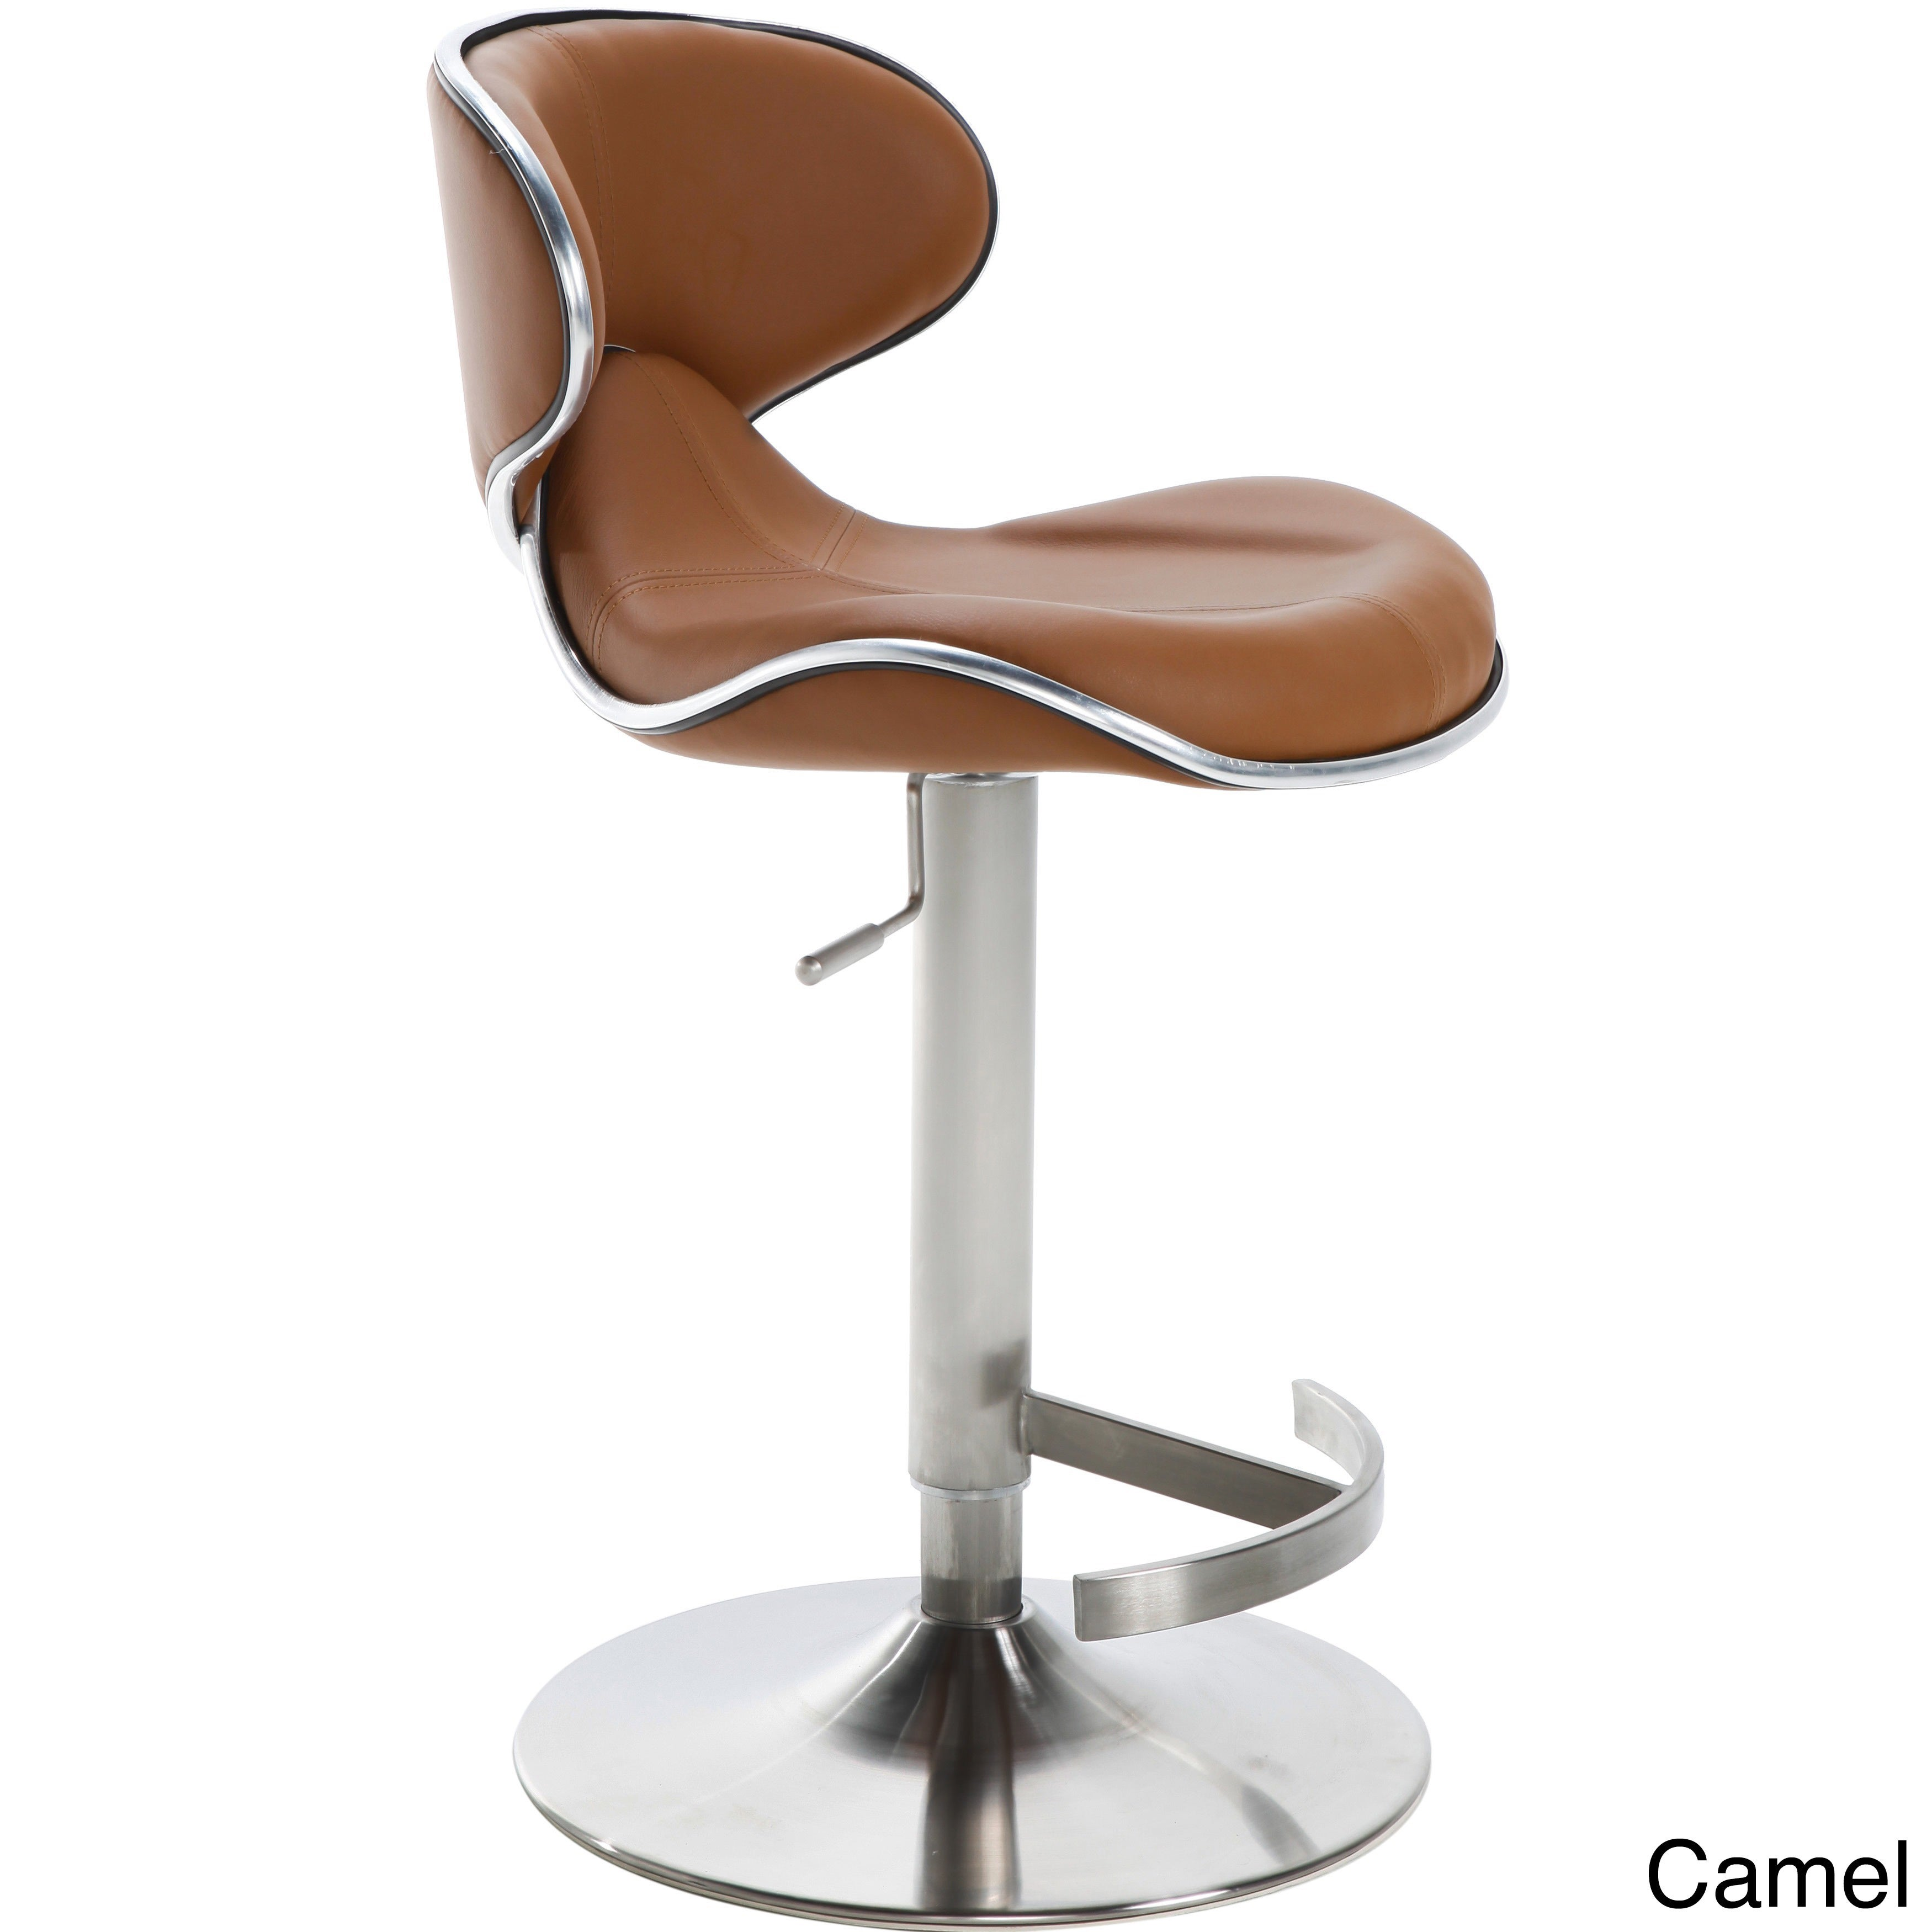 adjustable height chair. Shop MIX Brushed Stainless Steel Adjustable Height Swivel Bar Stool - On Sale Free Shipping Today Overstock.com 5704014 Chair